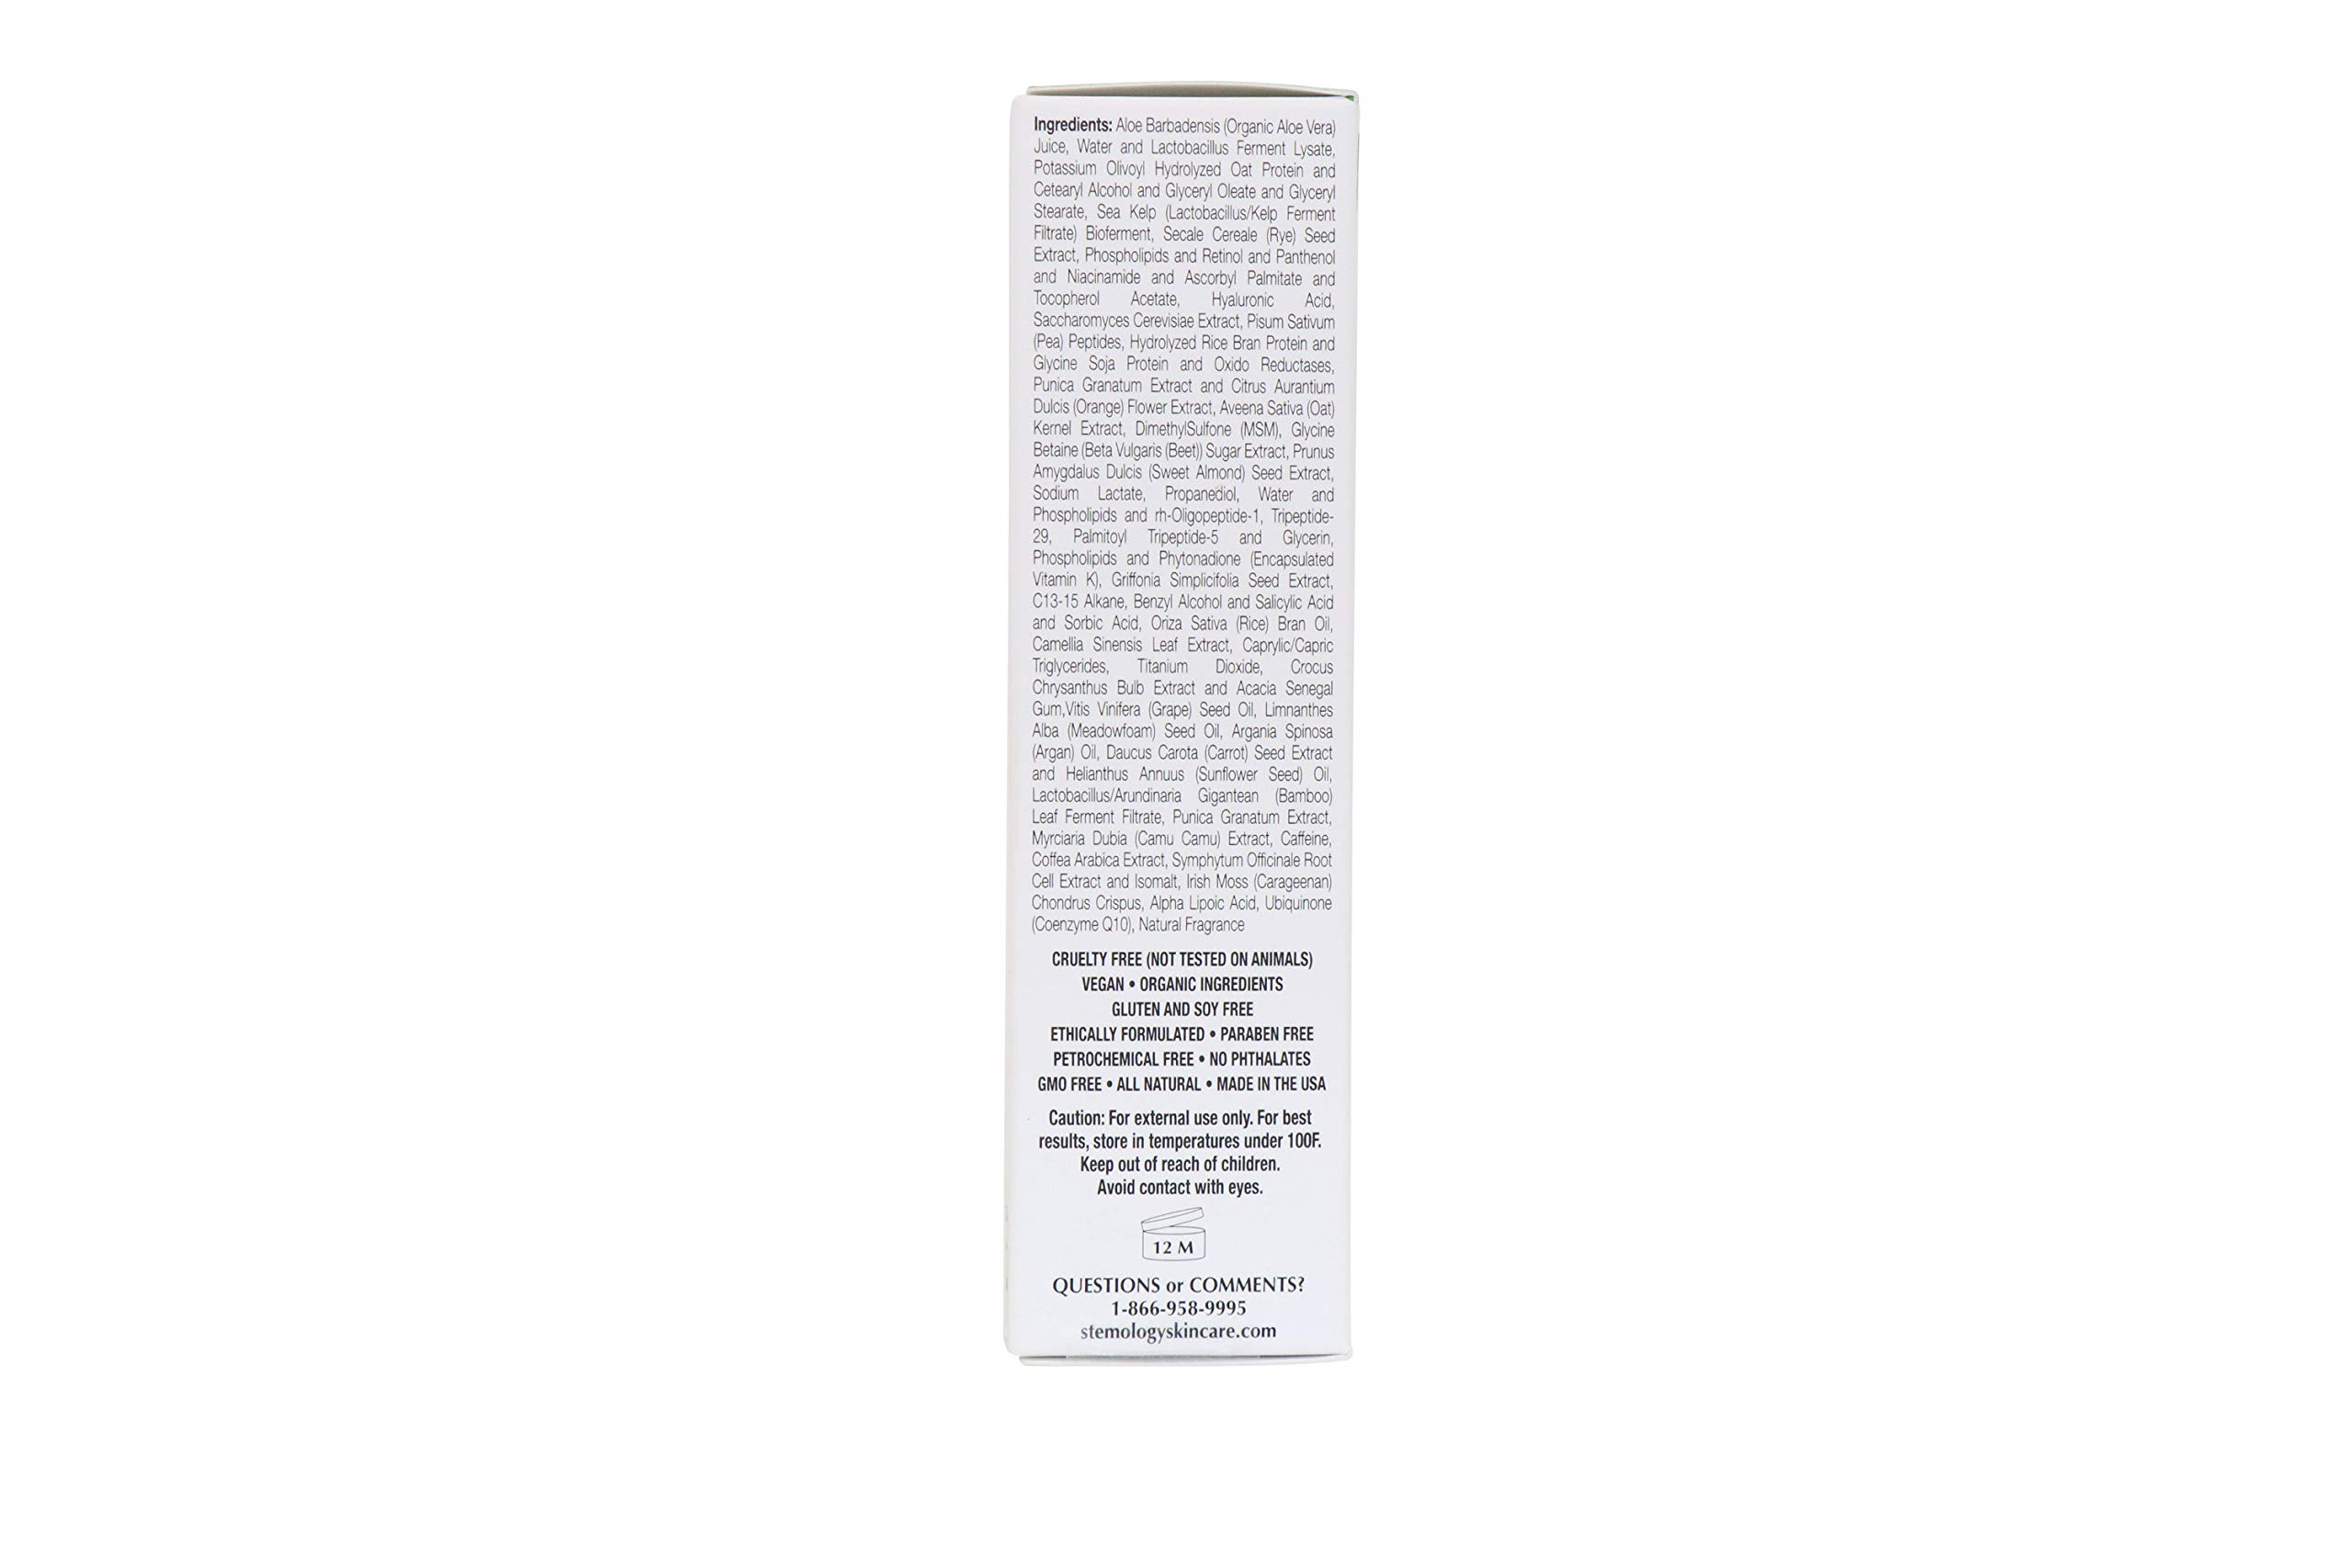 Stemology Skincare Cell Revive Eye Serum Complete With StemCore-3 (0.5 fl oz. / 15 ml)